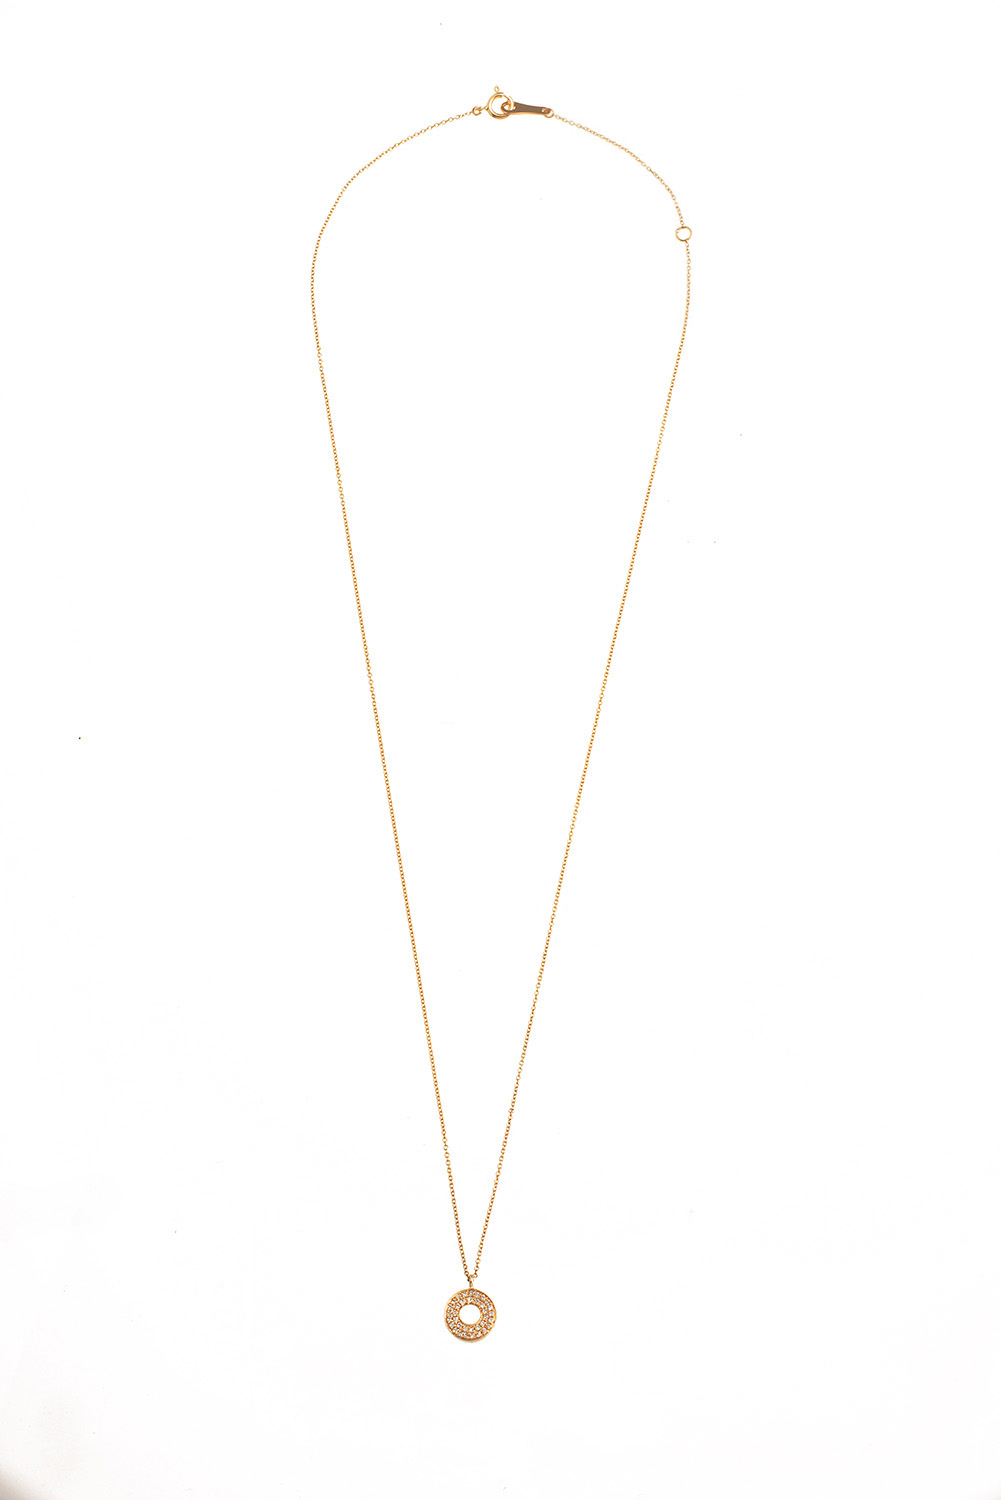 18k Gold And Diamond Circle Necklace (n5235 Y) Pertaining To Most Recent Circle Of Sparkle Necklaces (View 14 of 25)